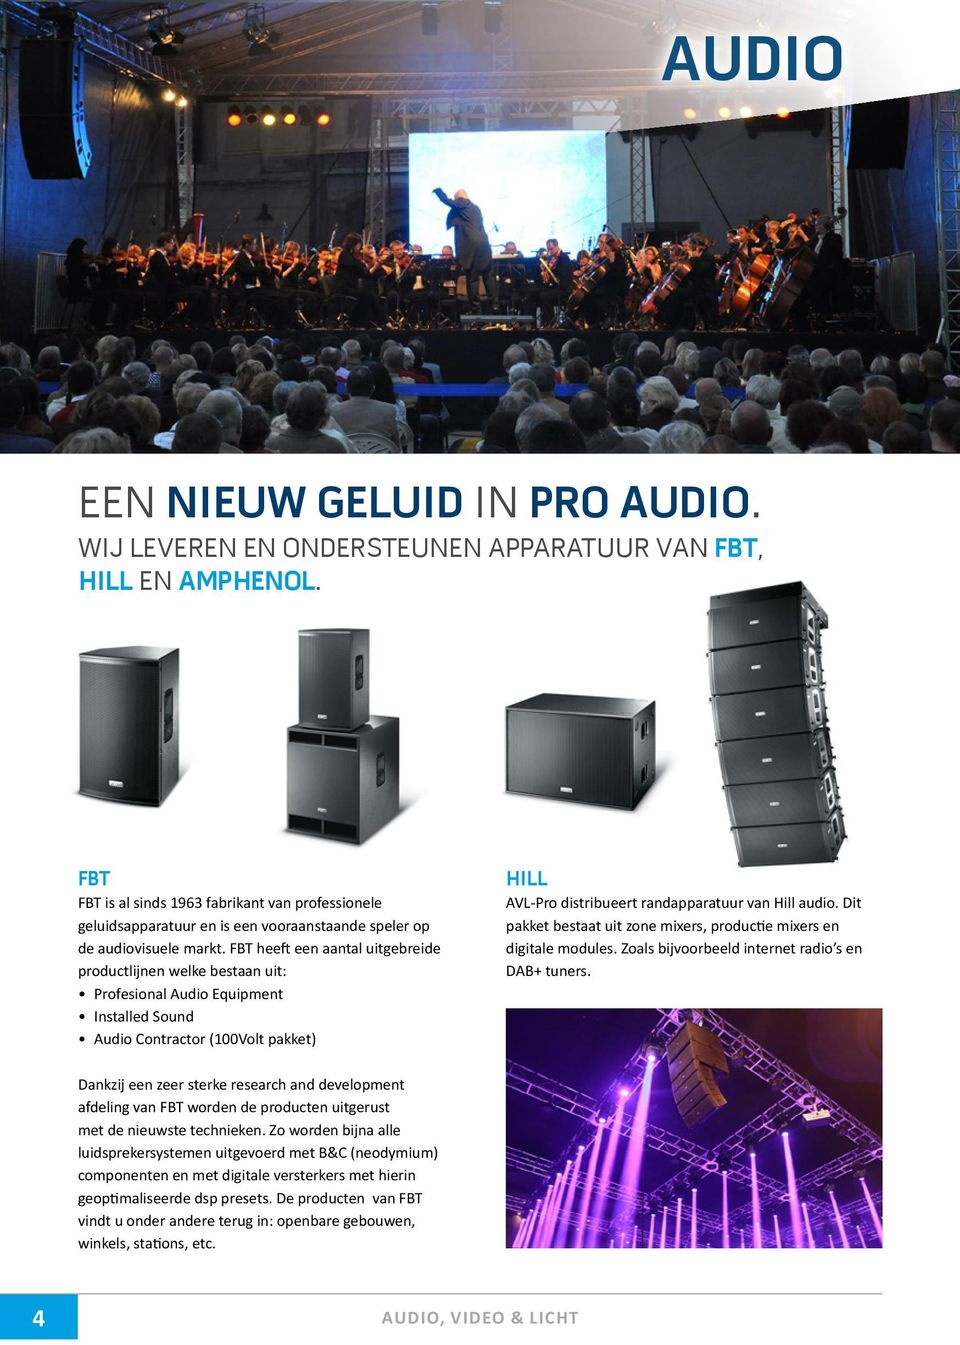 FBT heeft een aantal uitgebreide productlijnen welke bestaan uit: Profesional Audio Equipment Installed Sound Audio Contractor (100Volt pakket) HILL AVL-Pro distribueert randapparatuur van Hill audio.